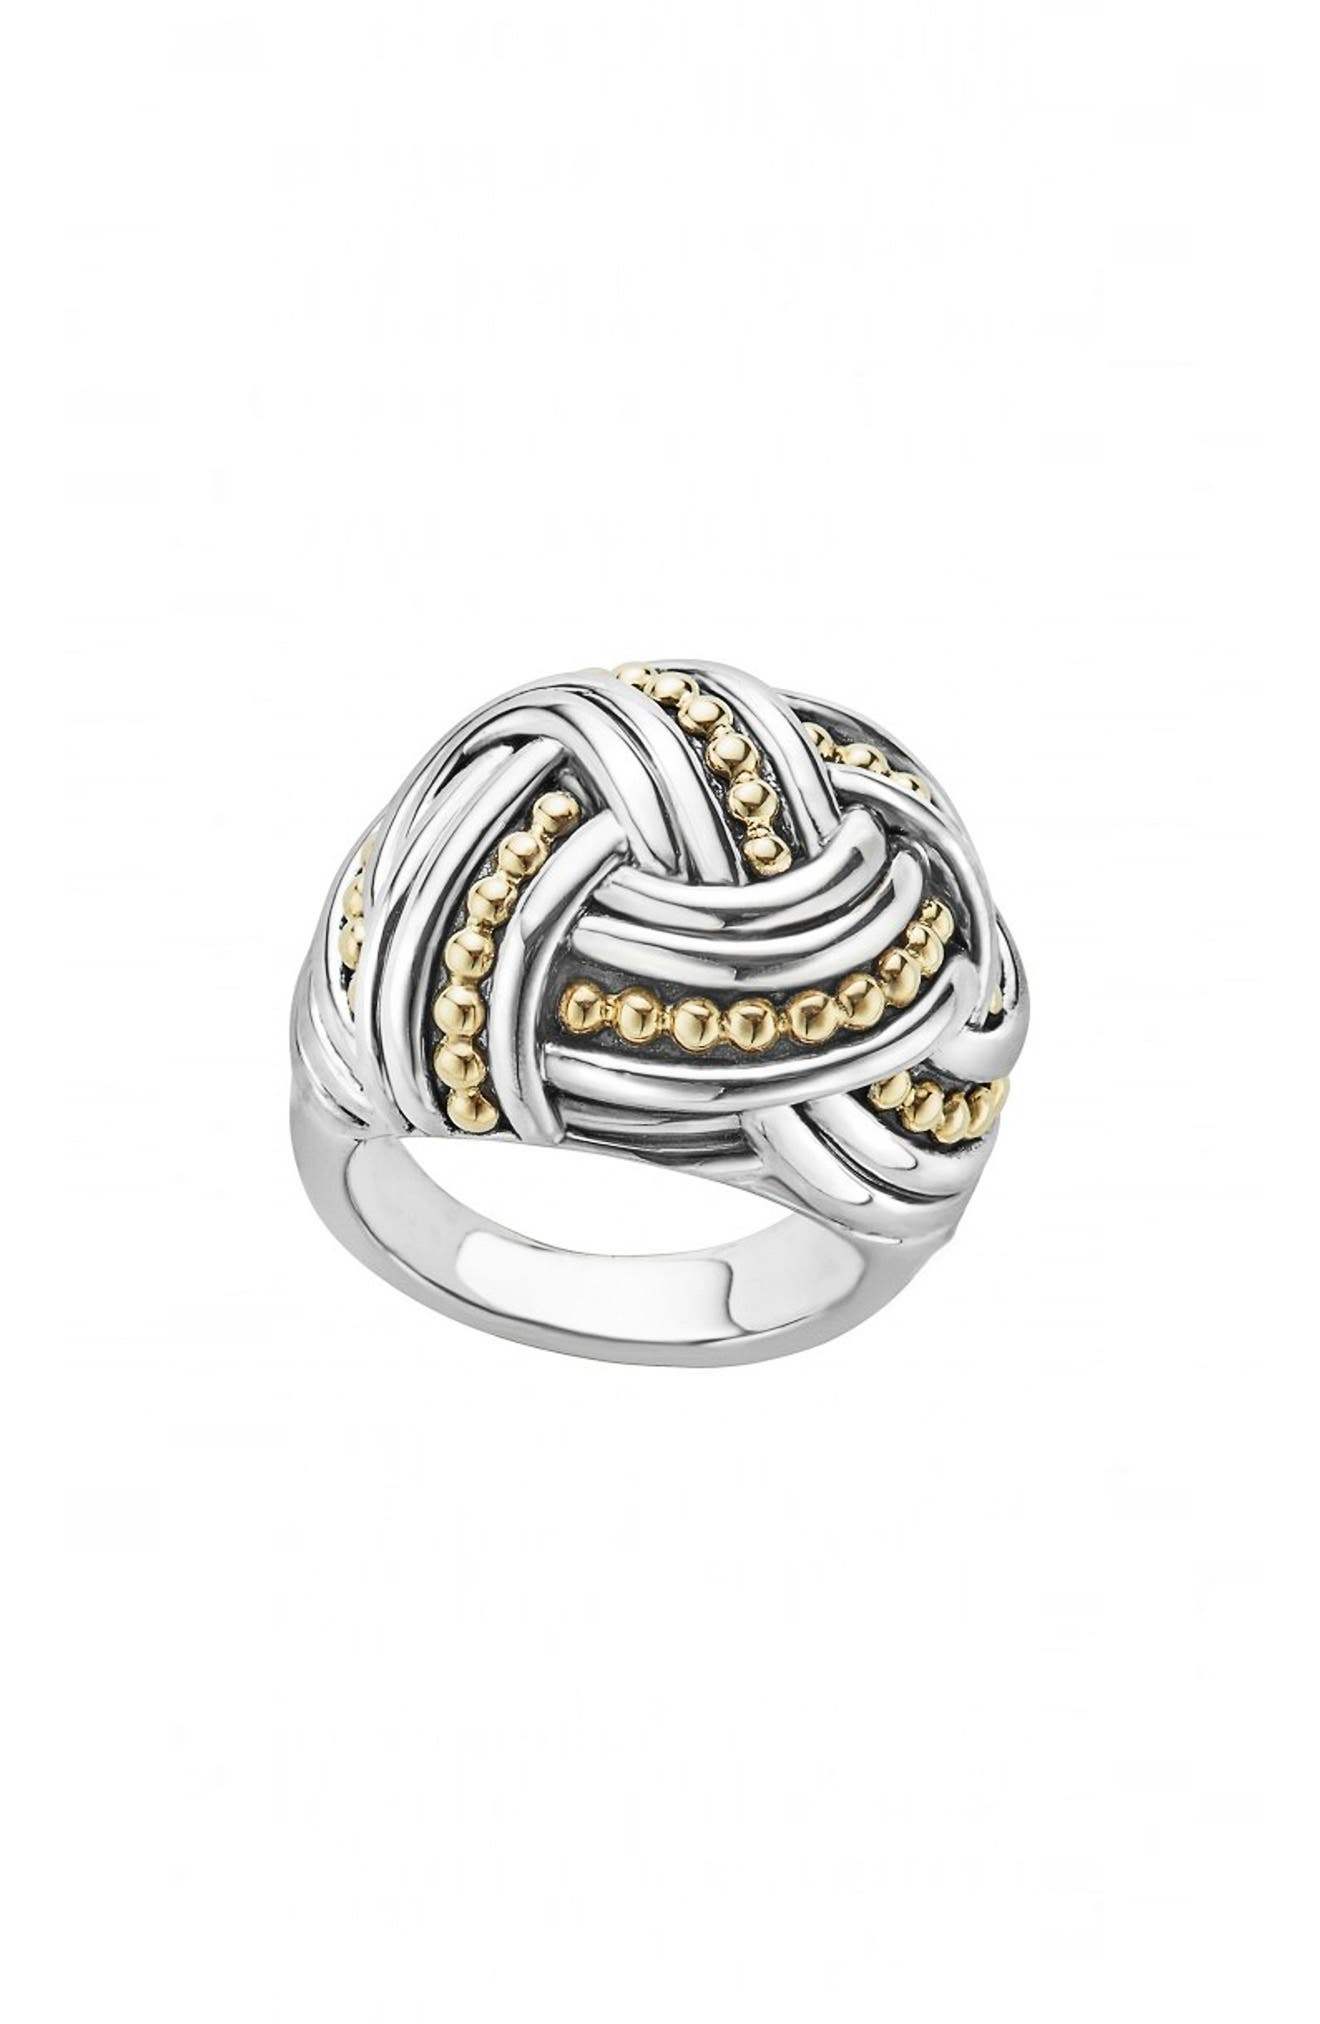 Torsade Large Rounded Rectangle Ring,                         Main,                         color, SILVER/ GOLD